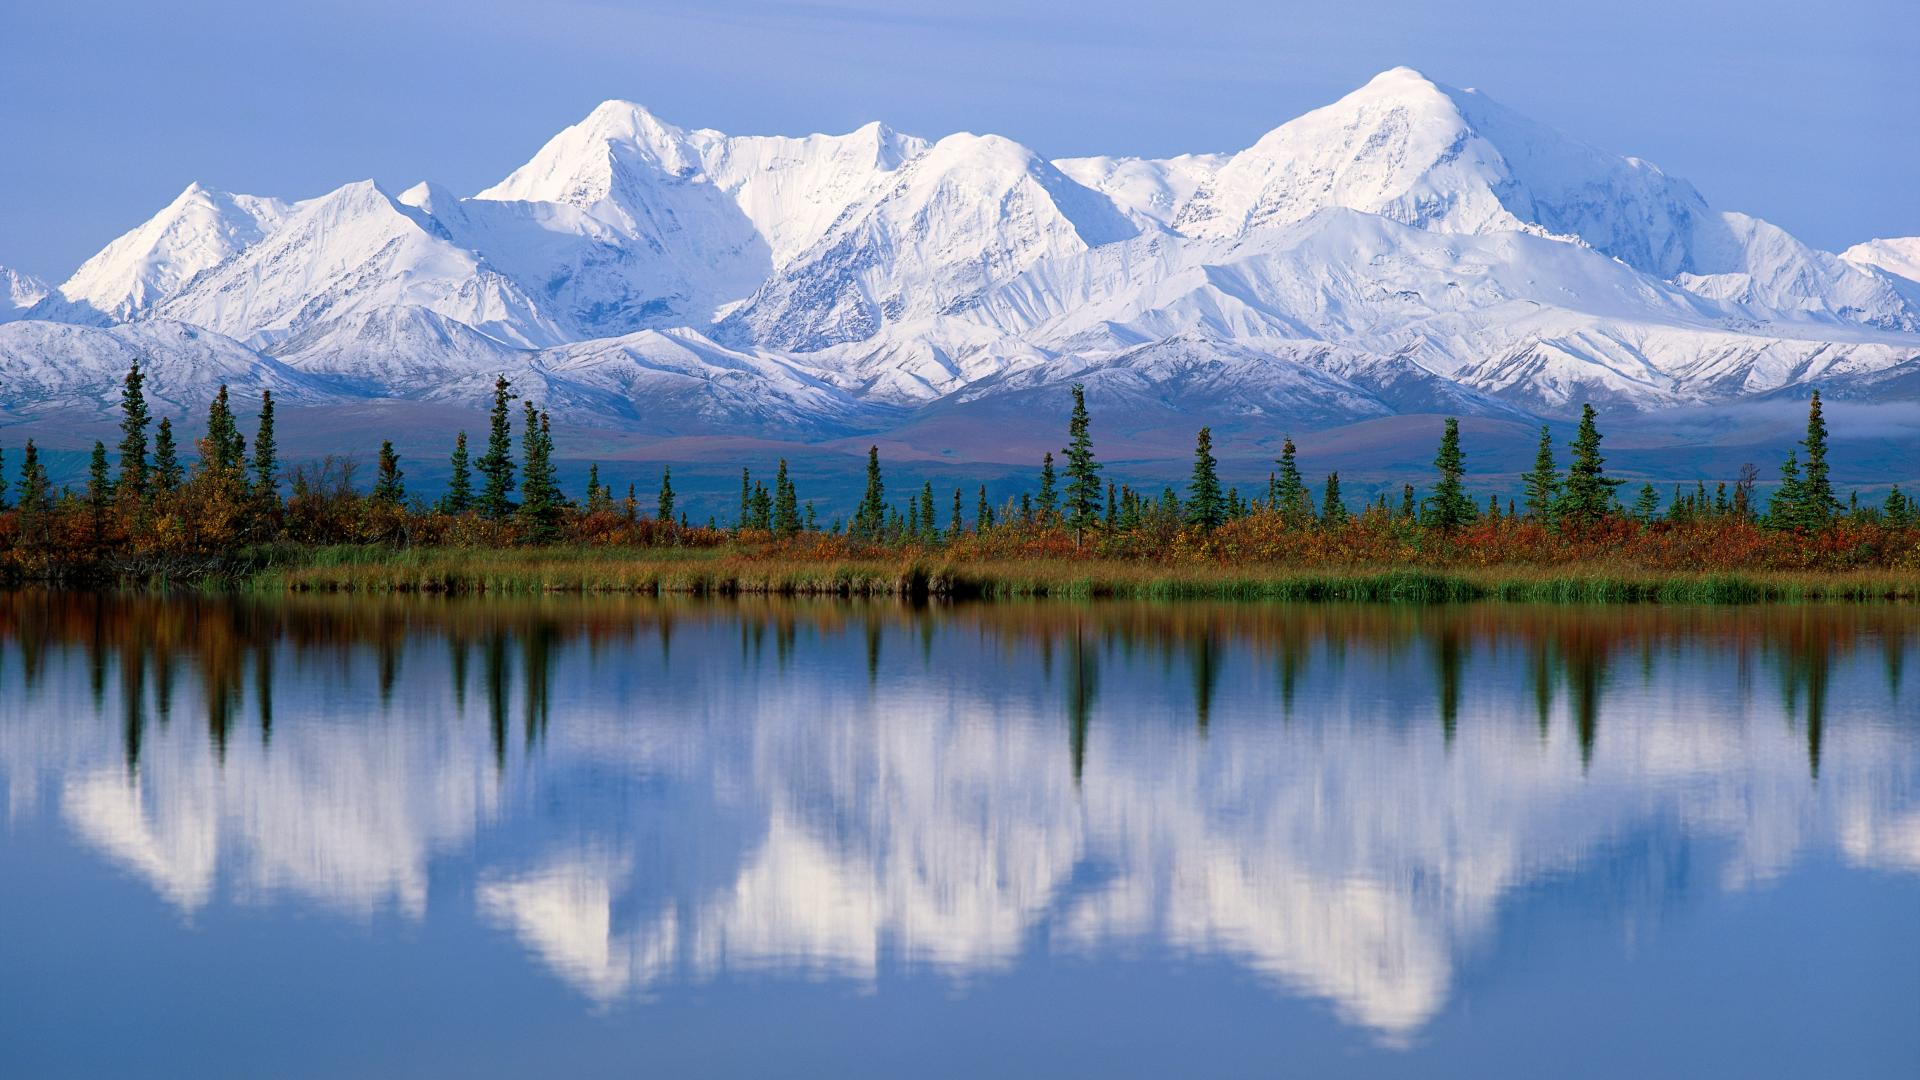 Background Pictures Beautiful Photos, Photo Gallery Alaska high resolution pictures